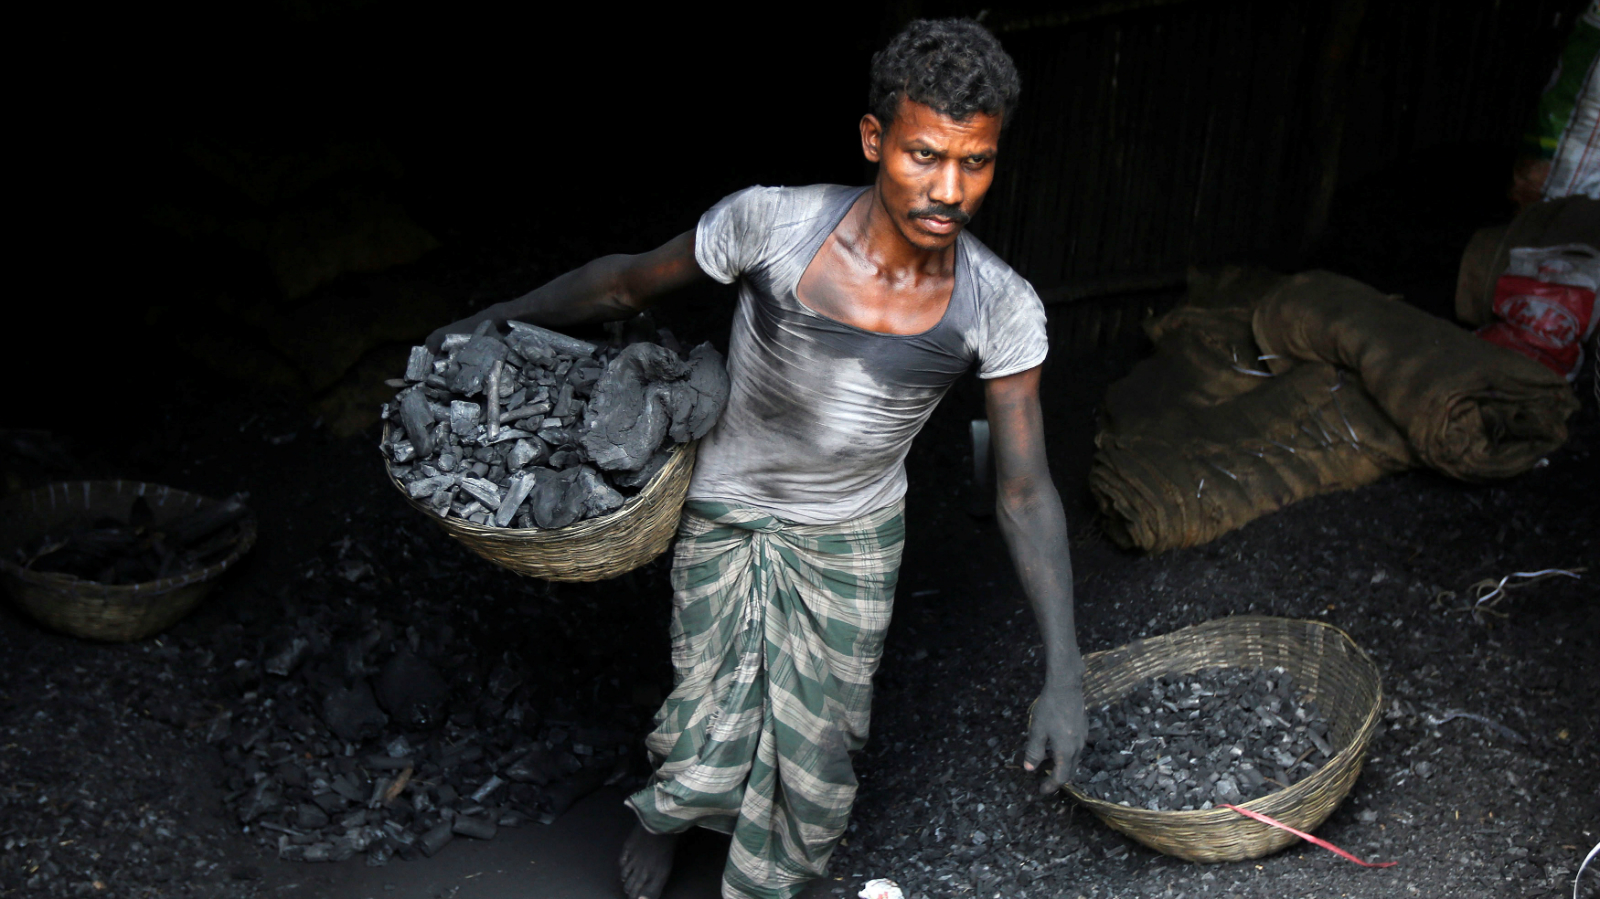 A worker carries coal in a basket in a industrial area in Mumbai, India May 31, 2017.